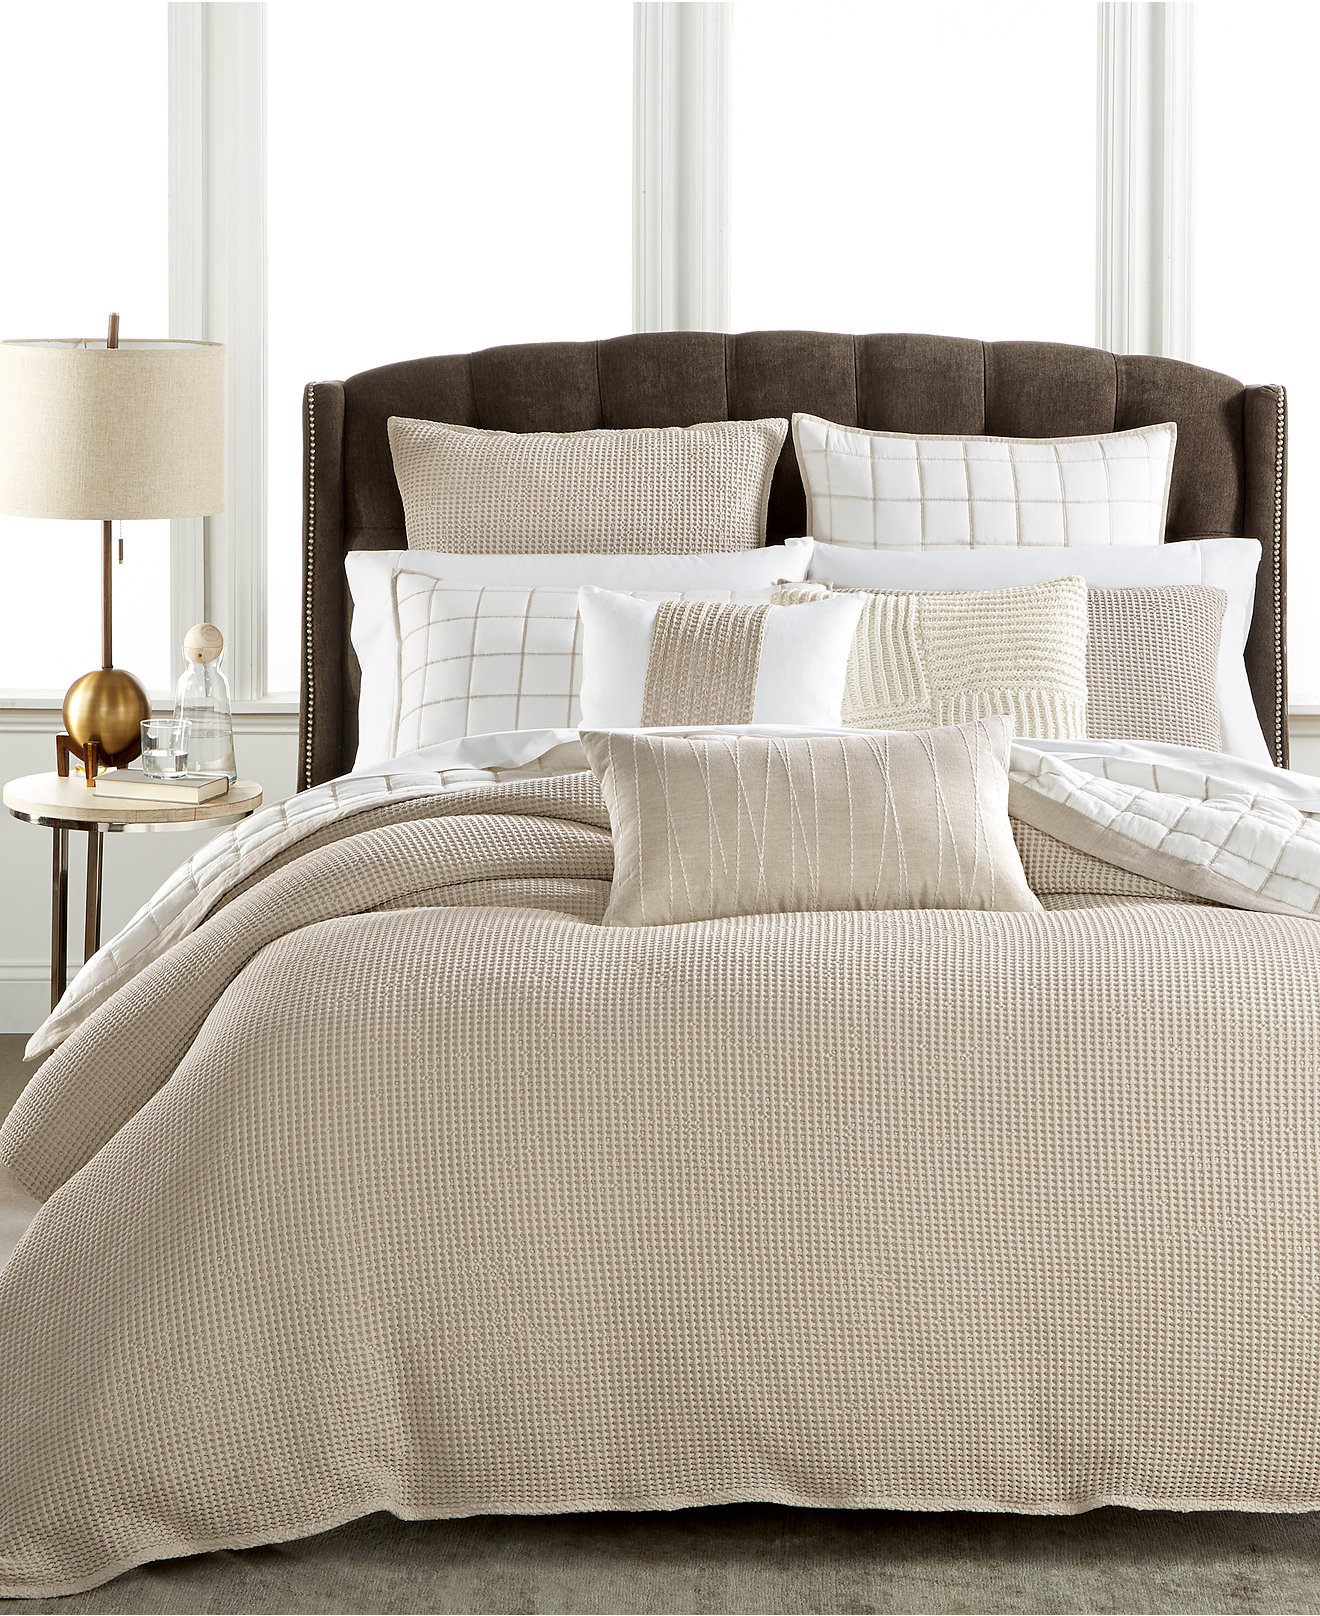 bedding collections hotel collection bedding  bath  macy's - hotel collection waffle weave duvet covers created for macy's